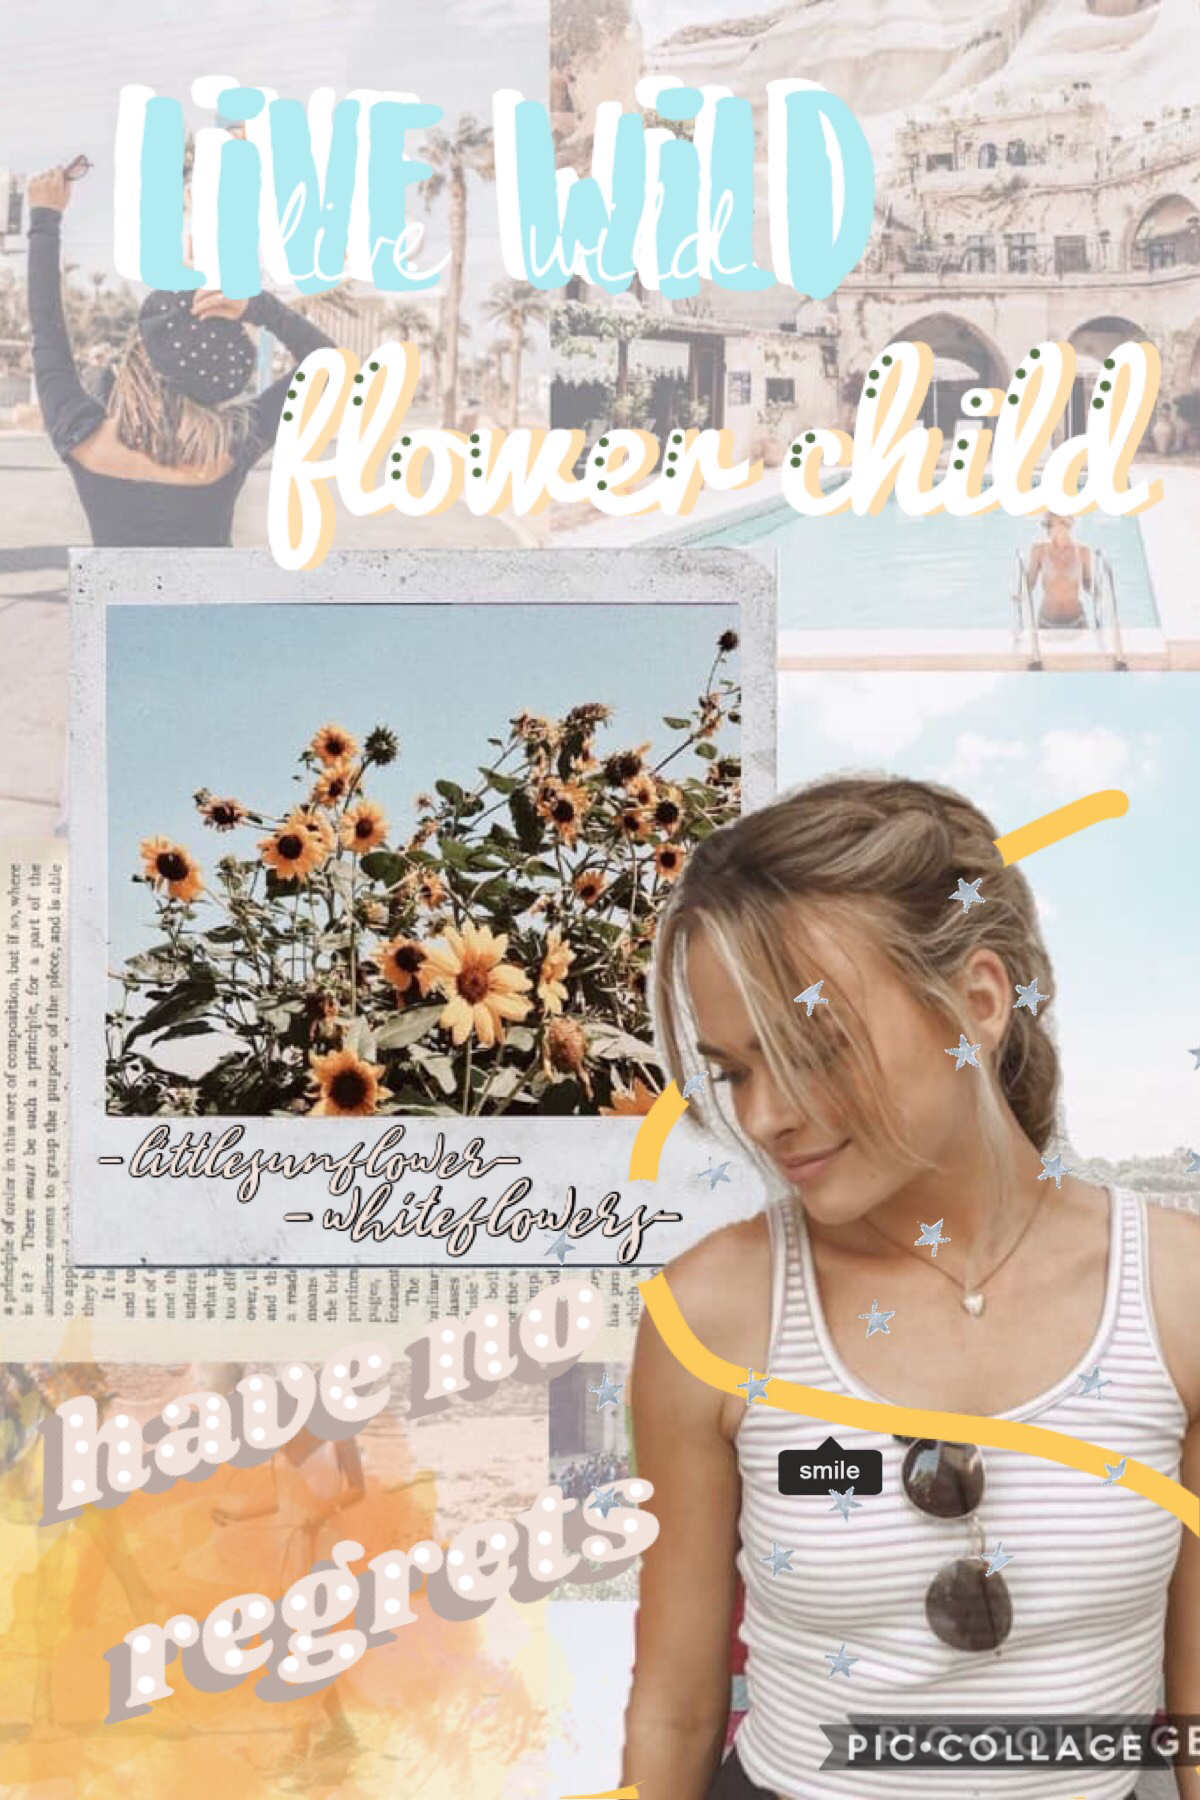 💛t a p💛 collab with the beautiful  -whiteflowers-!! go follow her her acct is g o r g e o u s! she did the STUNNING background and i did the text and pngs. lmk if you want to be my next collab!  💕 cat